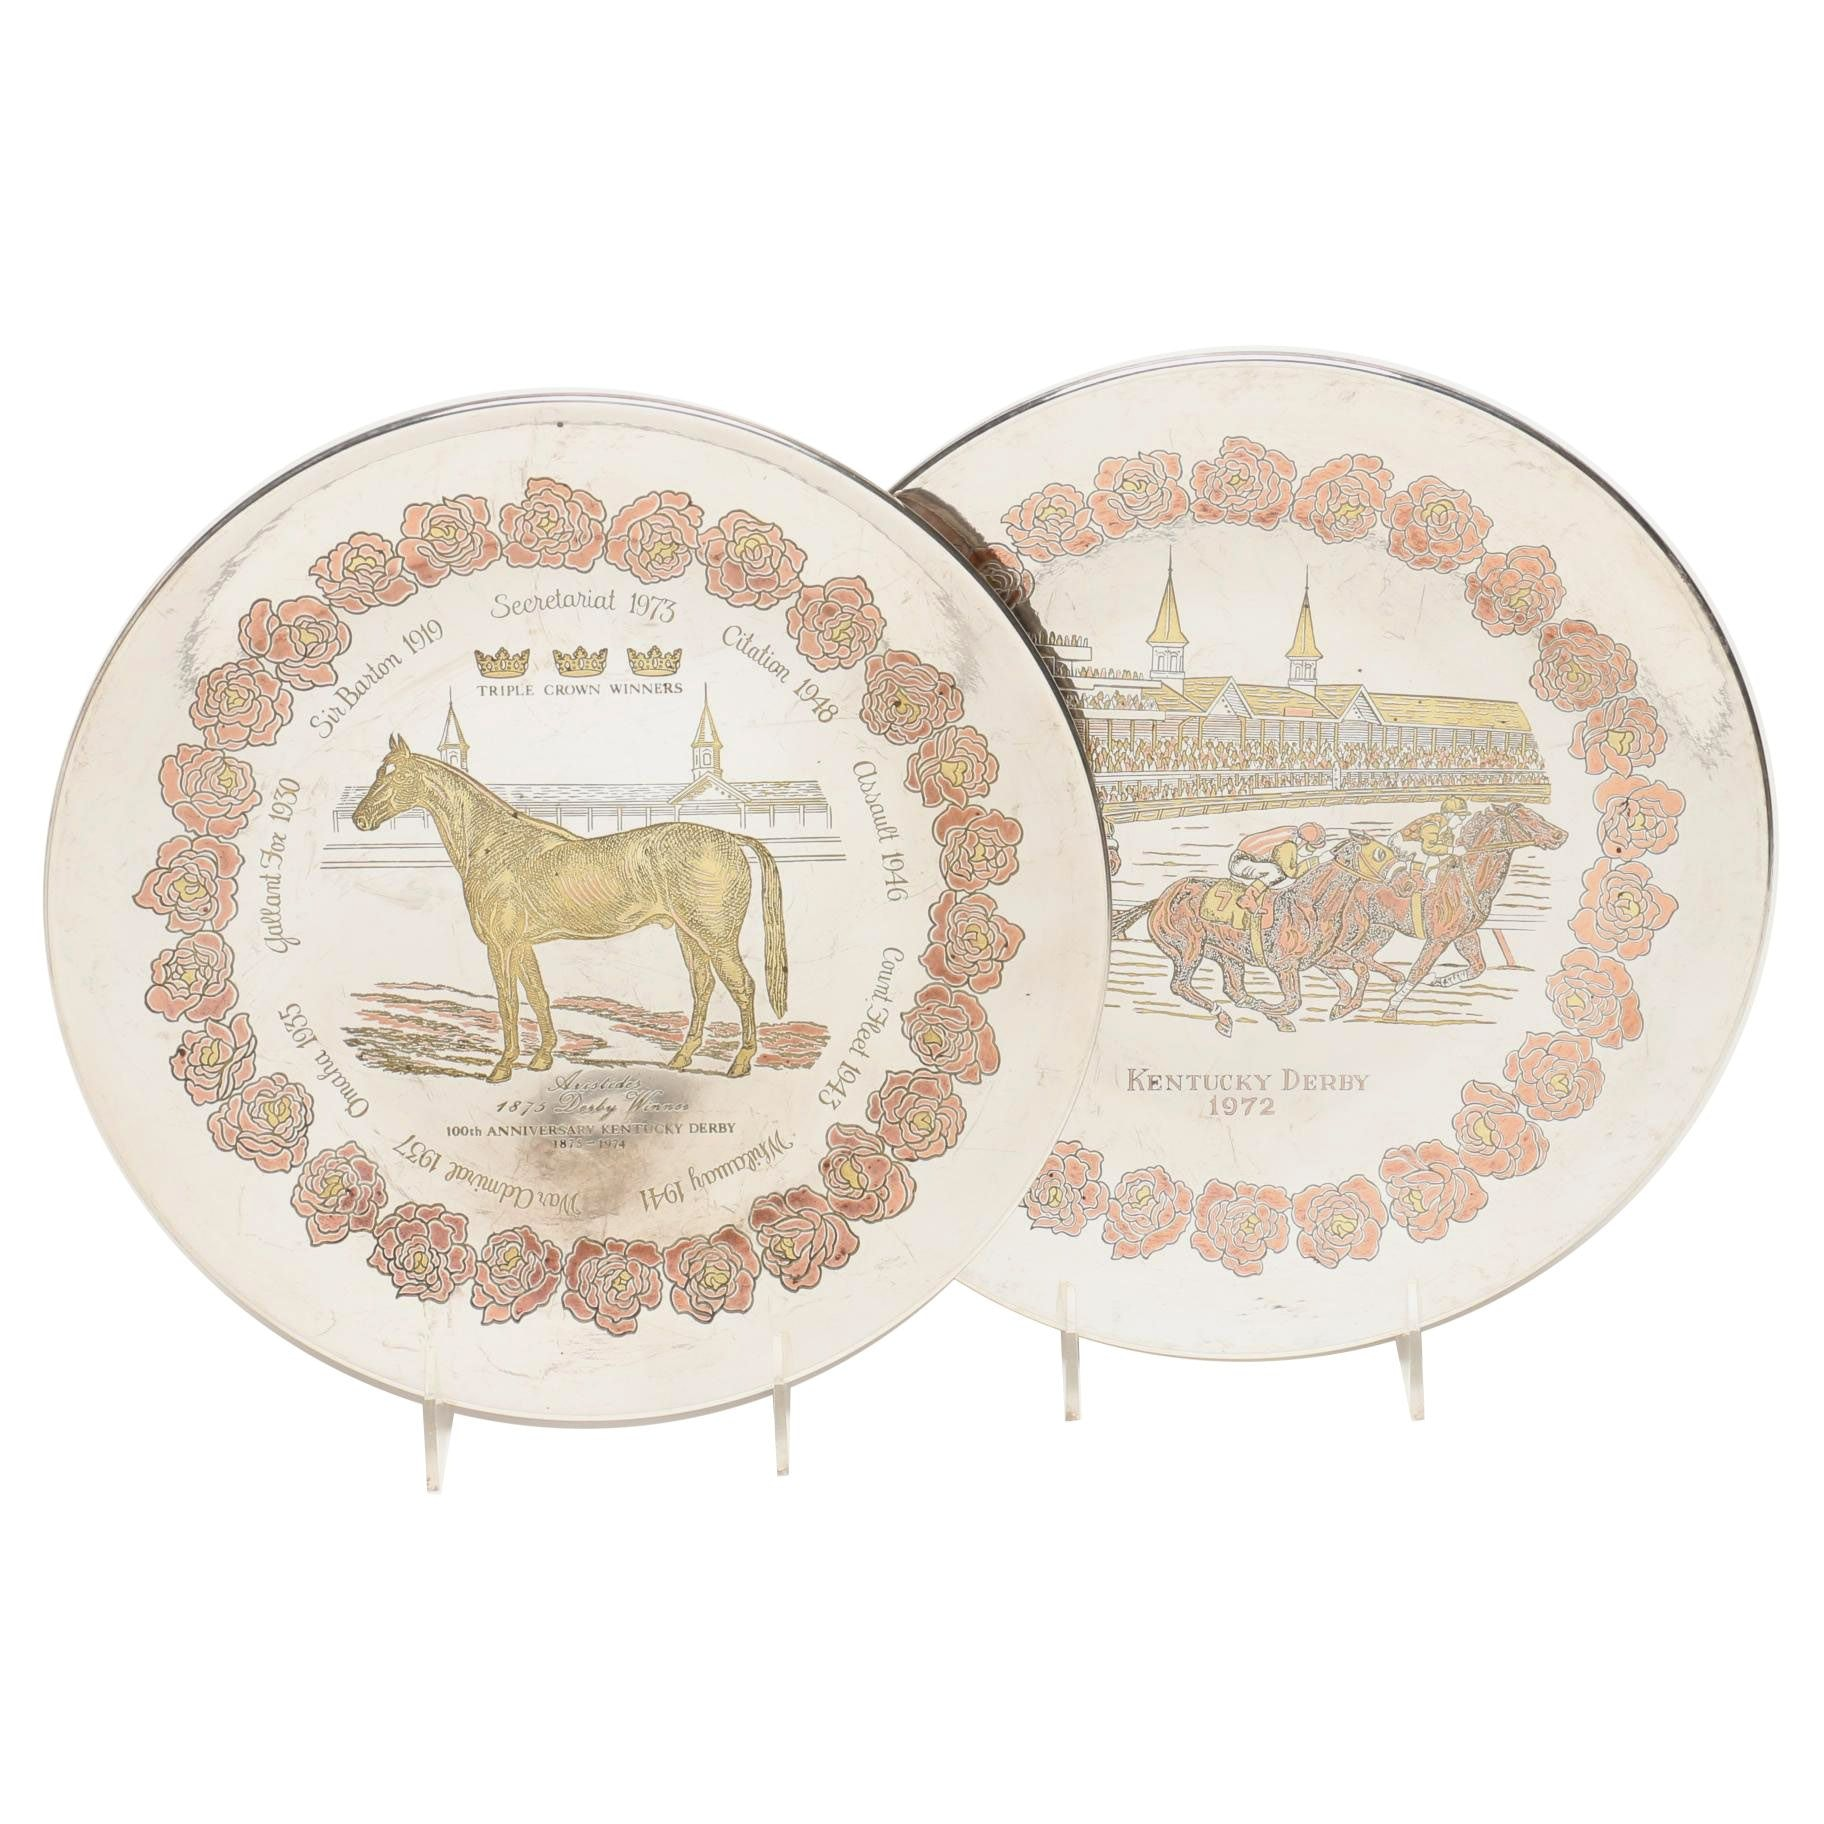 Reed & Barton Limited Edition Kentucky Derby Damascene Plates